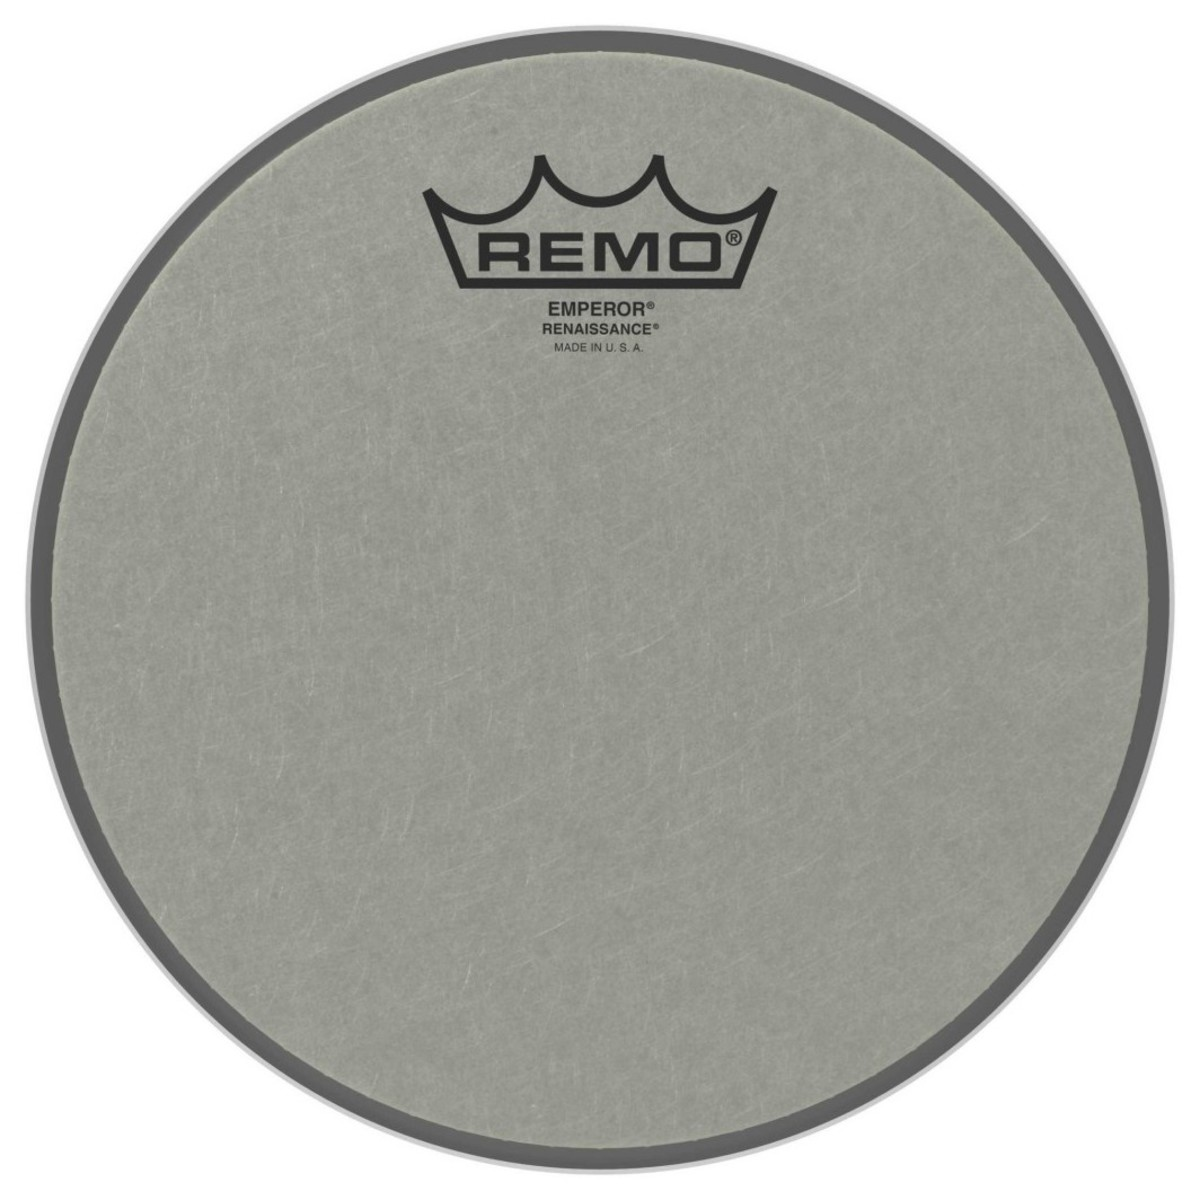 Click to view product details and reviews for Remo Emperor Renaissance 10 Drum Head.